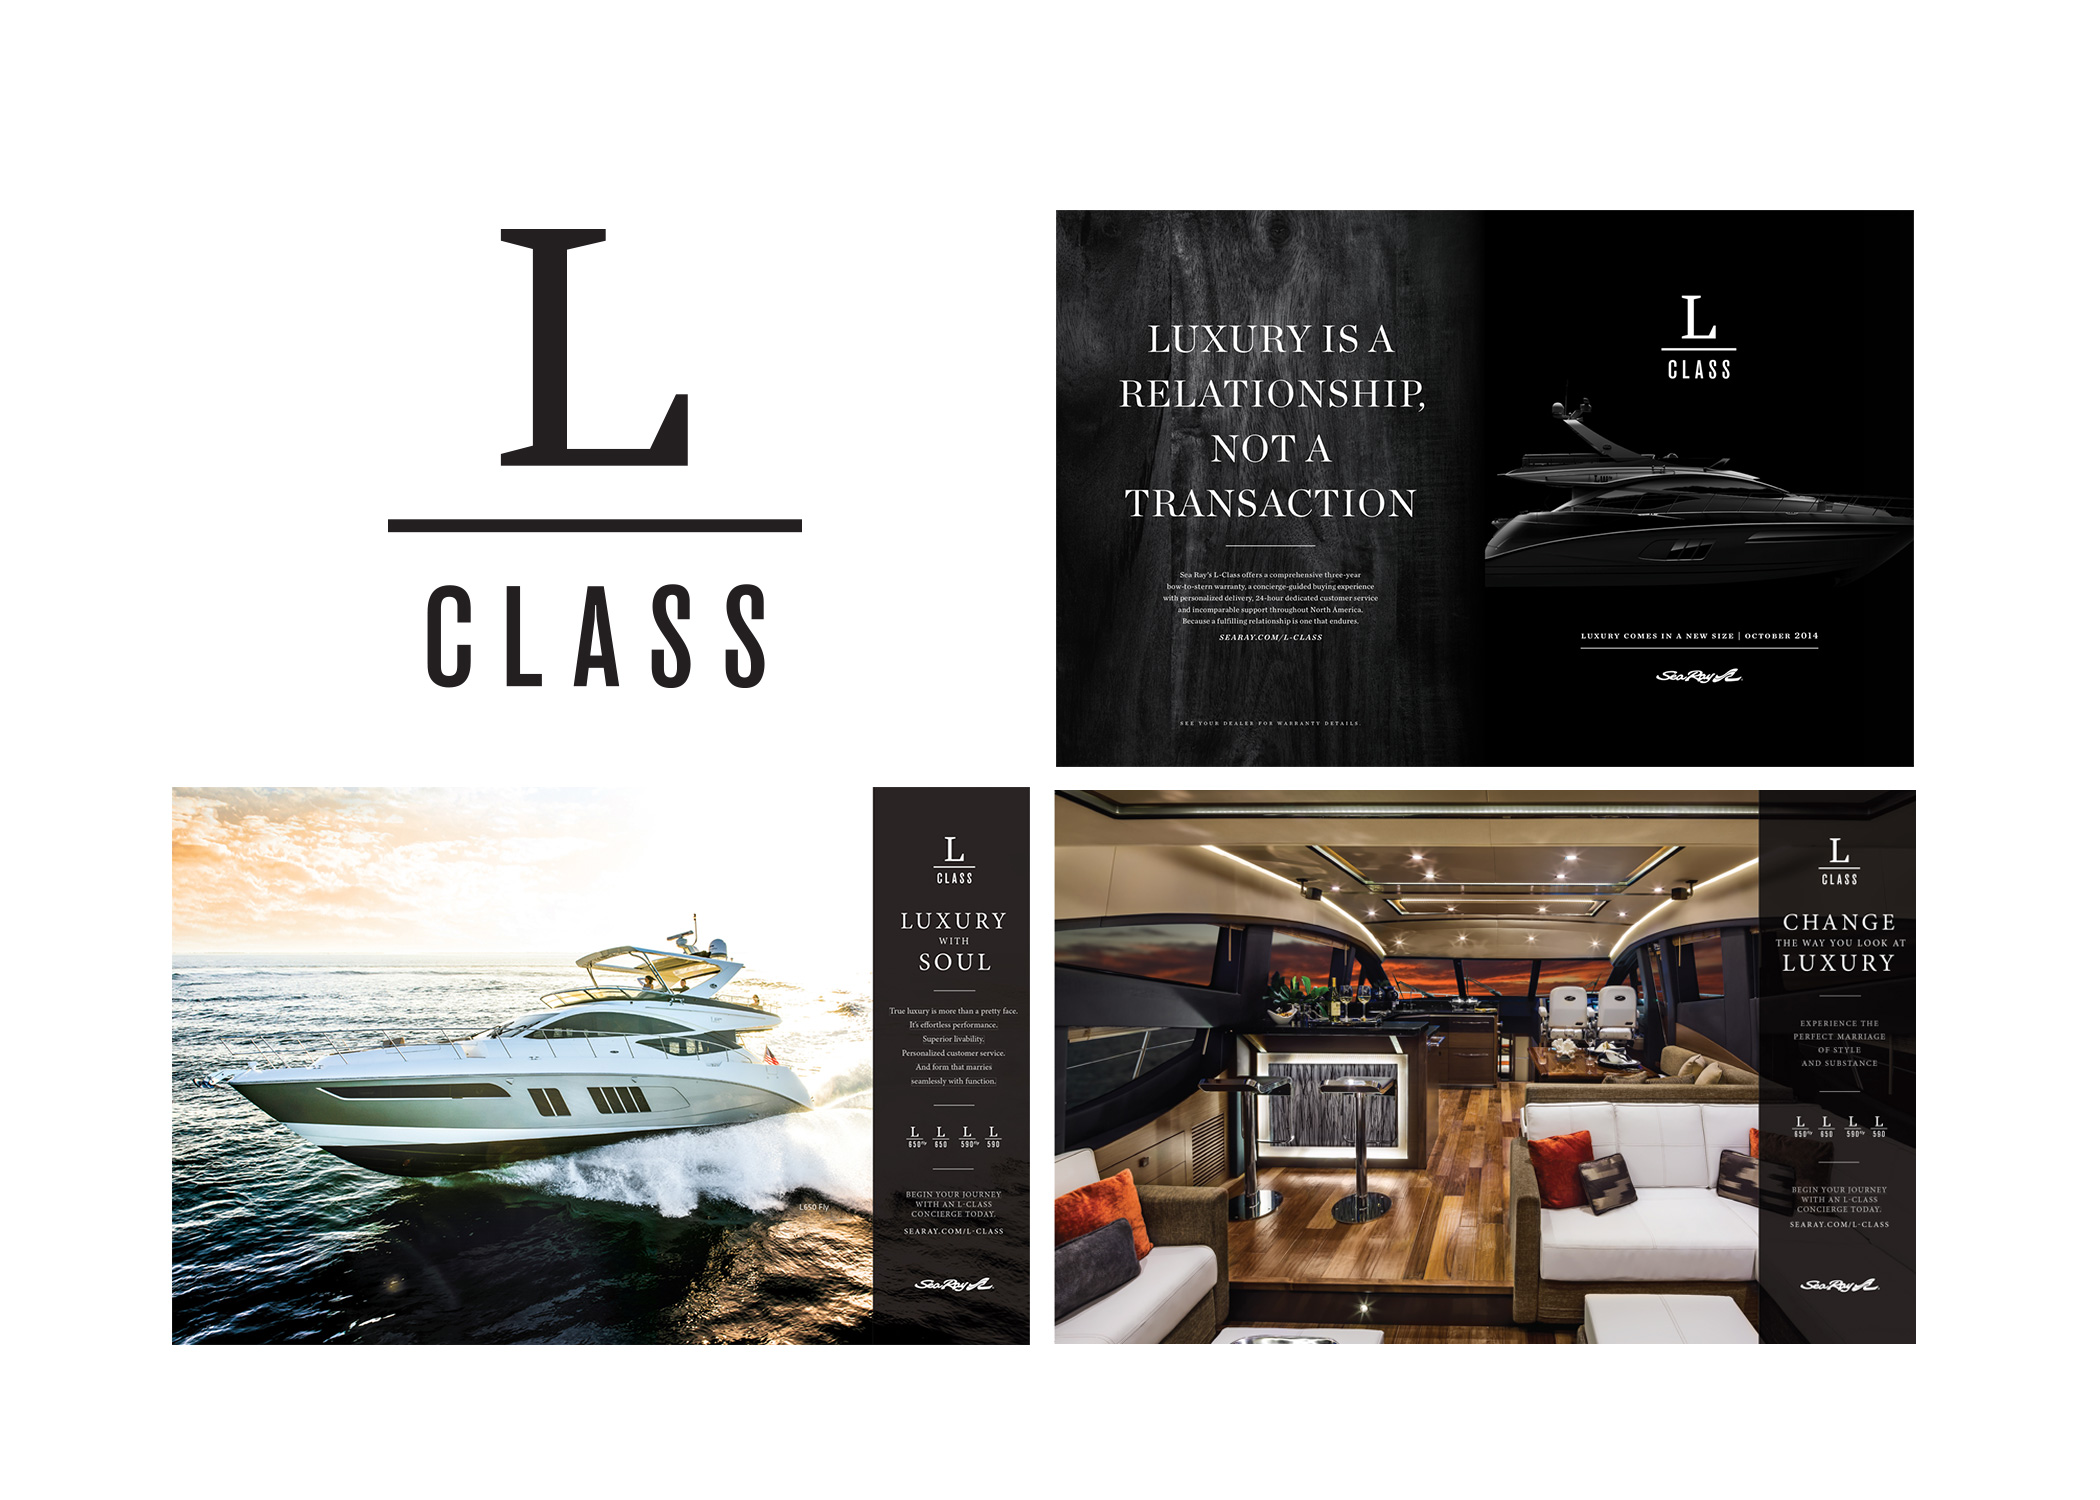 Several dynamic ads for L Class luxury yachts